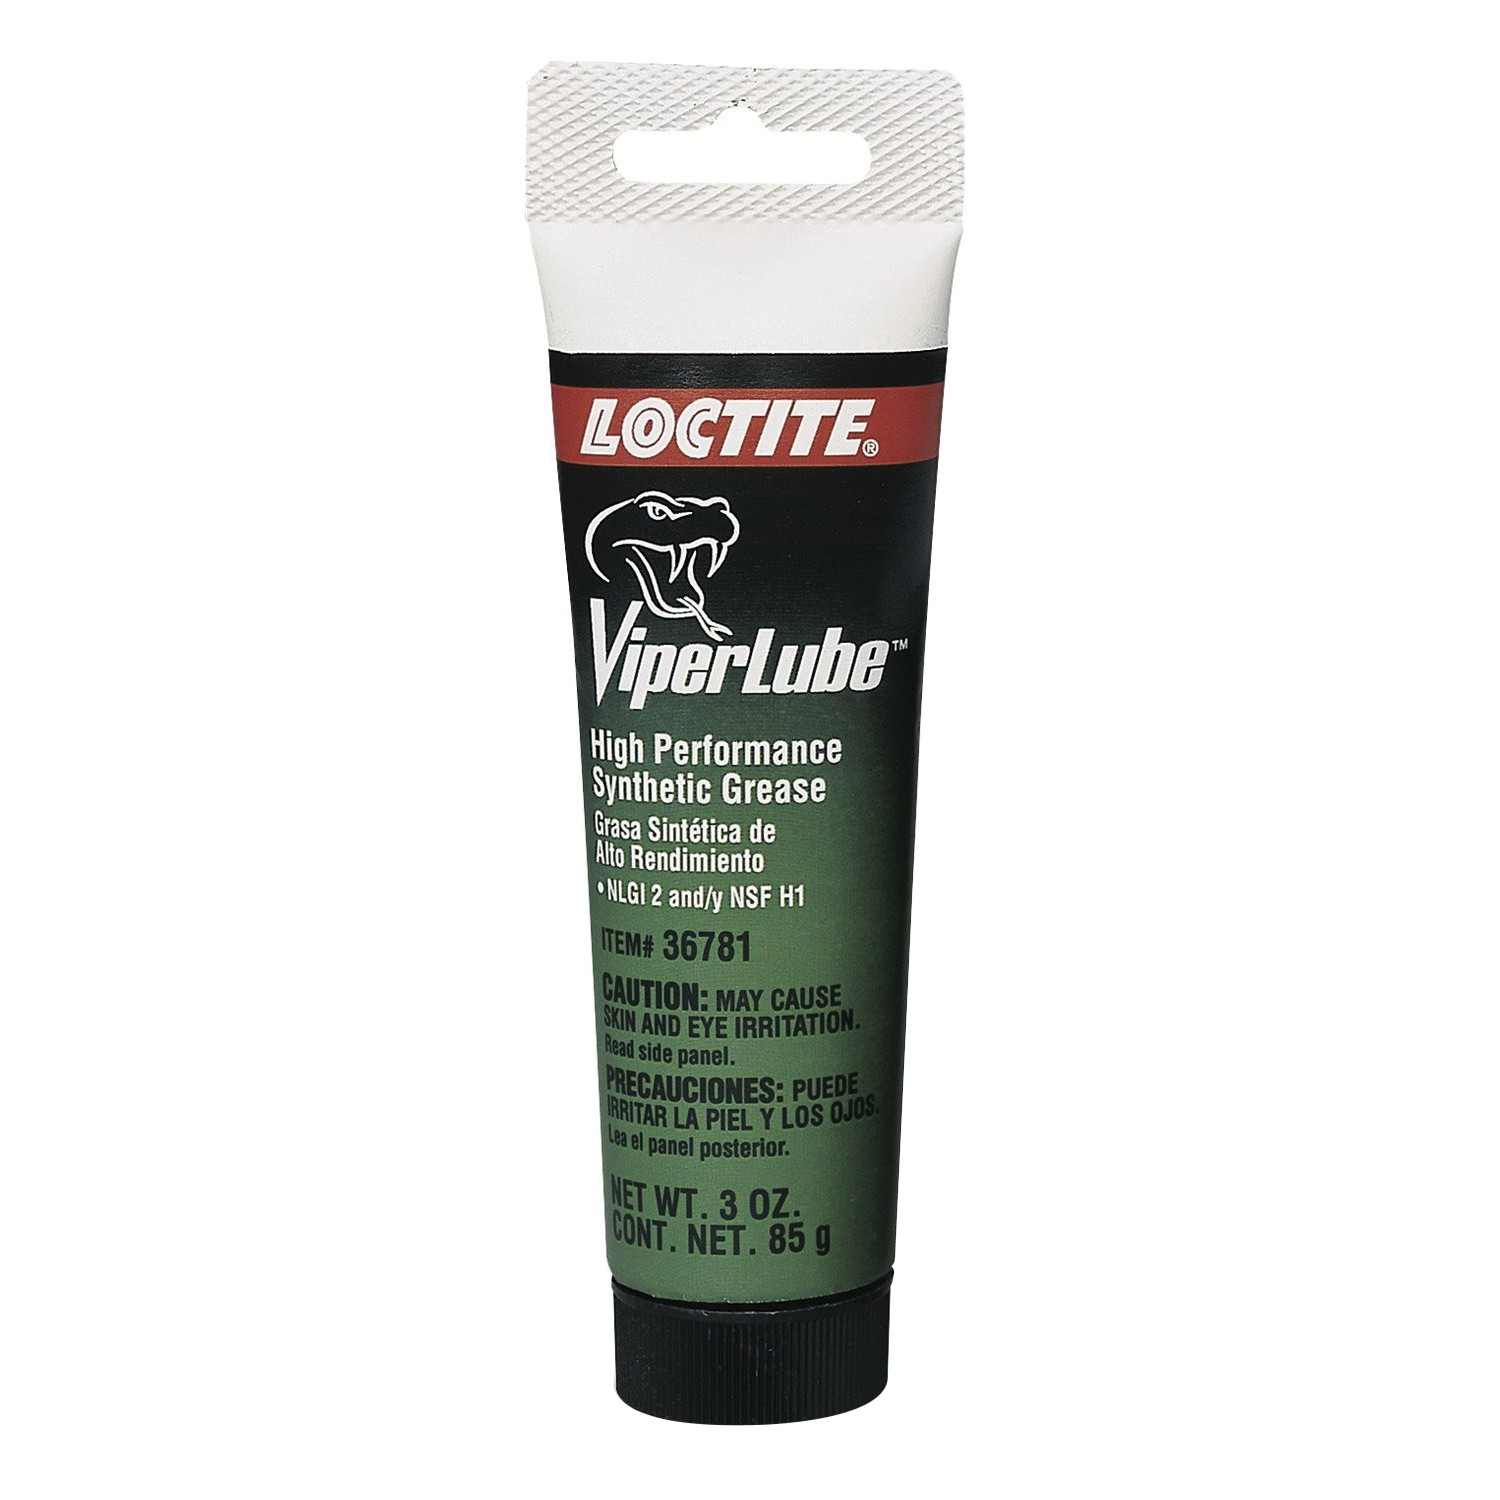 Loctite® 36781 High Performance Synthetic Grease, 3 oz Tube, Semi-Solid, White, -40 to 500 deg F